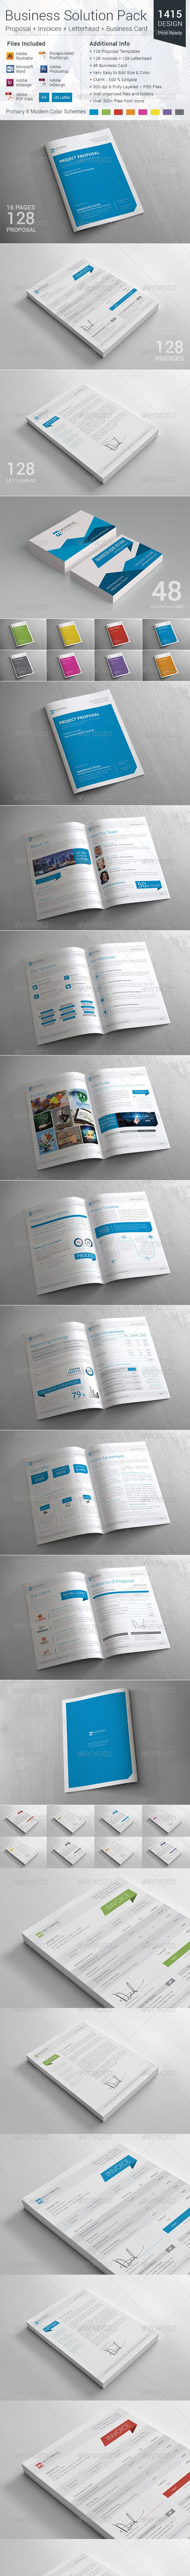 Inventive Business Solution Pack - Proposals & Invoices Stationery